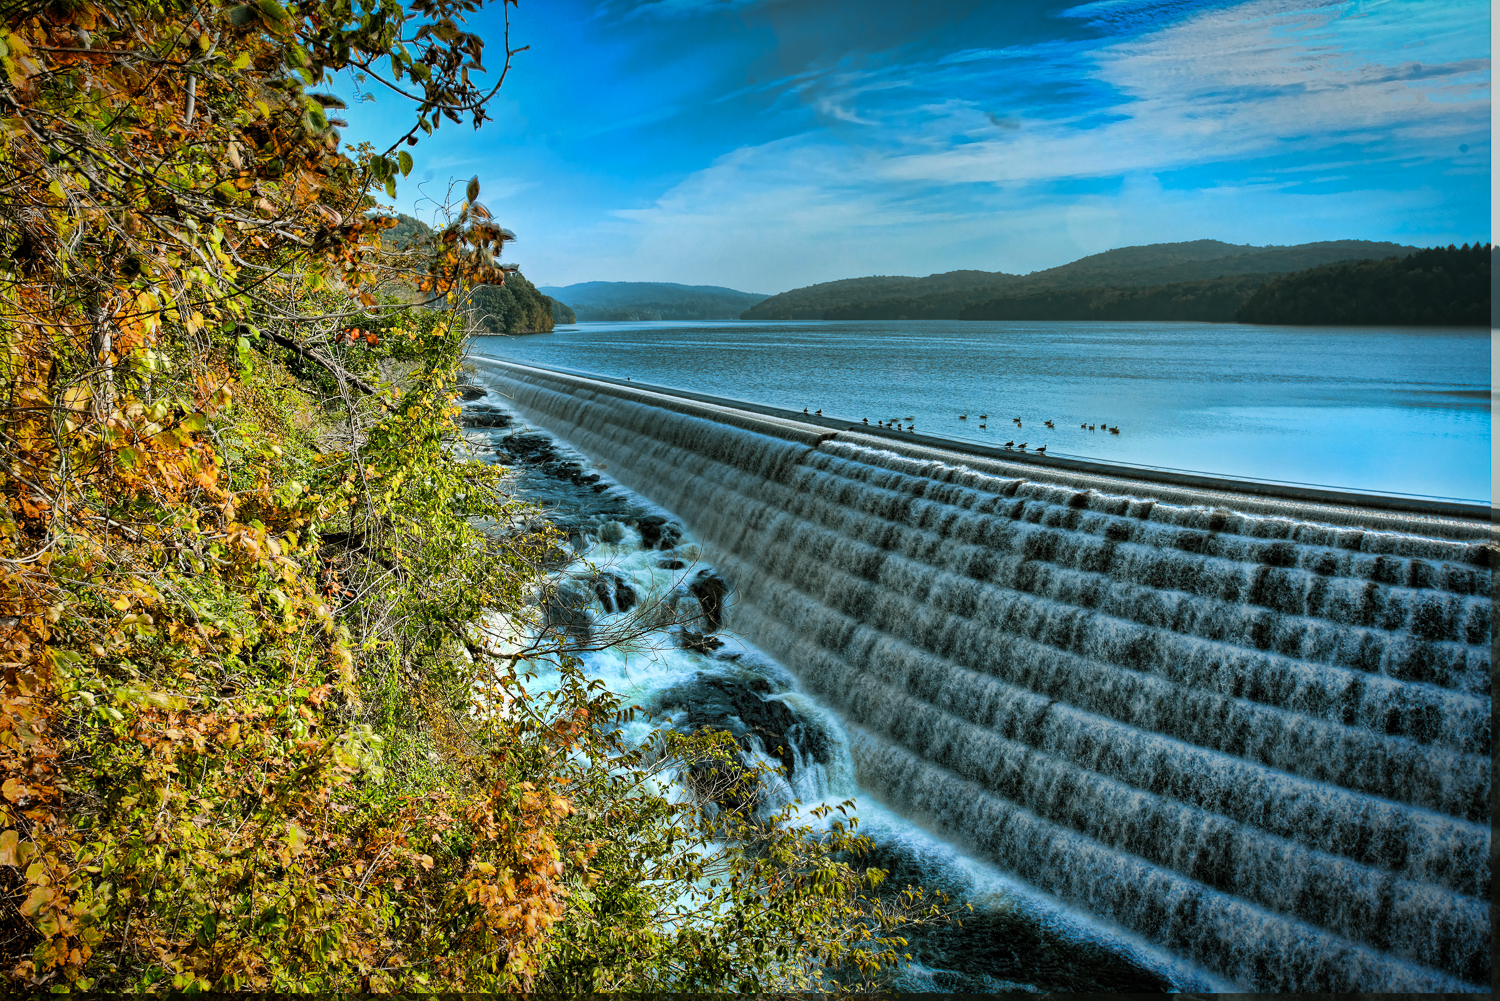 TheNew Croton Dam, part of theNew York City water supply system, stretches across theCroton RivernearCroton-on-Hudson, New York, about 22 miles (35 km) north of New York City. Construction began in 1892 andwas completed in 1906Designed by Alphonse Fteley (1837–1903), thismasonry damis 266 feet (81 m) broad at its base and 297 feet (91 m) high from base to crest. Its foundation extends 130 feet (40 m) below thebed of the river, and the dam contains 850,000 cubic yards (650,000 m3) of masonry.The engineers' tablet mounted on the headhouse nearest the spillway lists the spillway length as 1,000 feet (300 m) and the totallength of the dam and spillway combined as 2,188 feet (667 m).At the time of its completion, it was the tallest dam in the world.New Croton Dam impounds up to 19 billion US gallons (72,000,000 m3) of water, a smallfraction of the New York City water system's total storage capacity of 580 billion US gallons (2.2×109m3). The dam, inWestchester County, has an unusualspillway, part artificial and part natural, which forms a waterfall on the north side of the structure. New Croton Dam has a public park and trail head at its base and a roadalong its crest. Road use is limited to pedestrians and emergency vehicles.